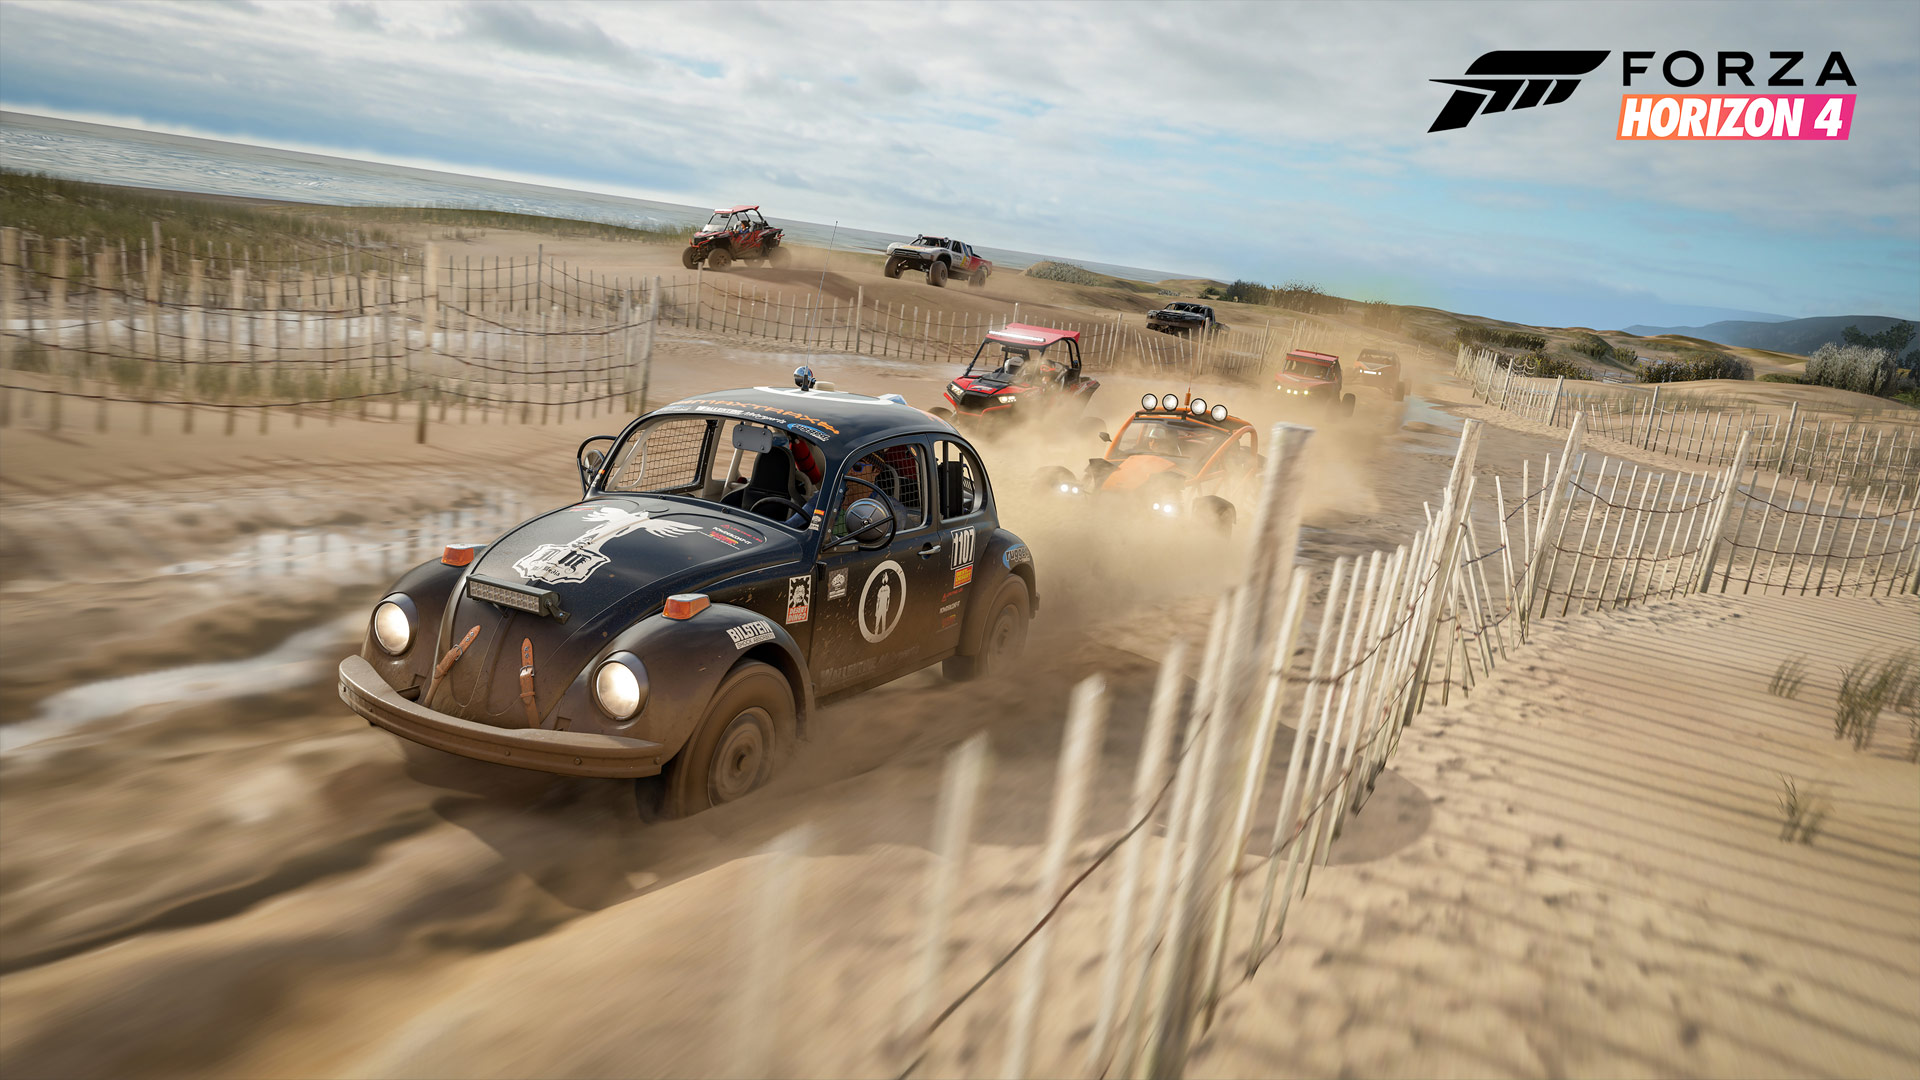 Forza Horizon 4 Beach Screenshot